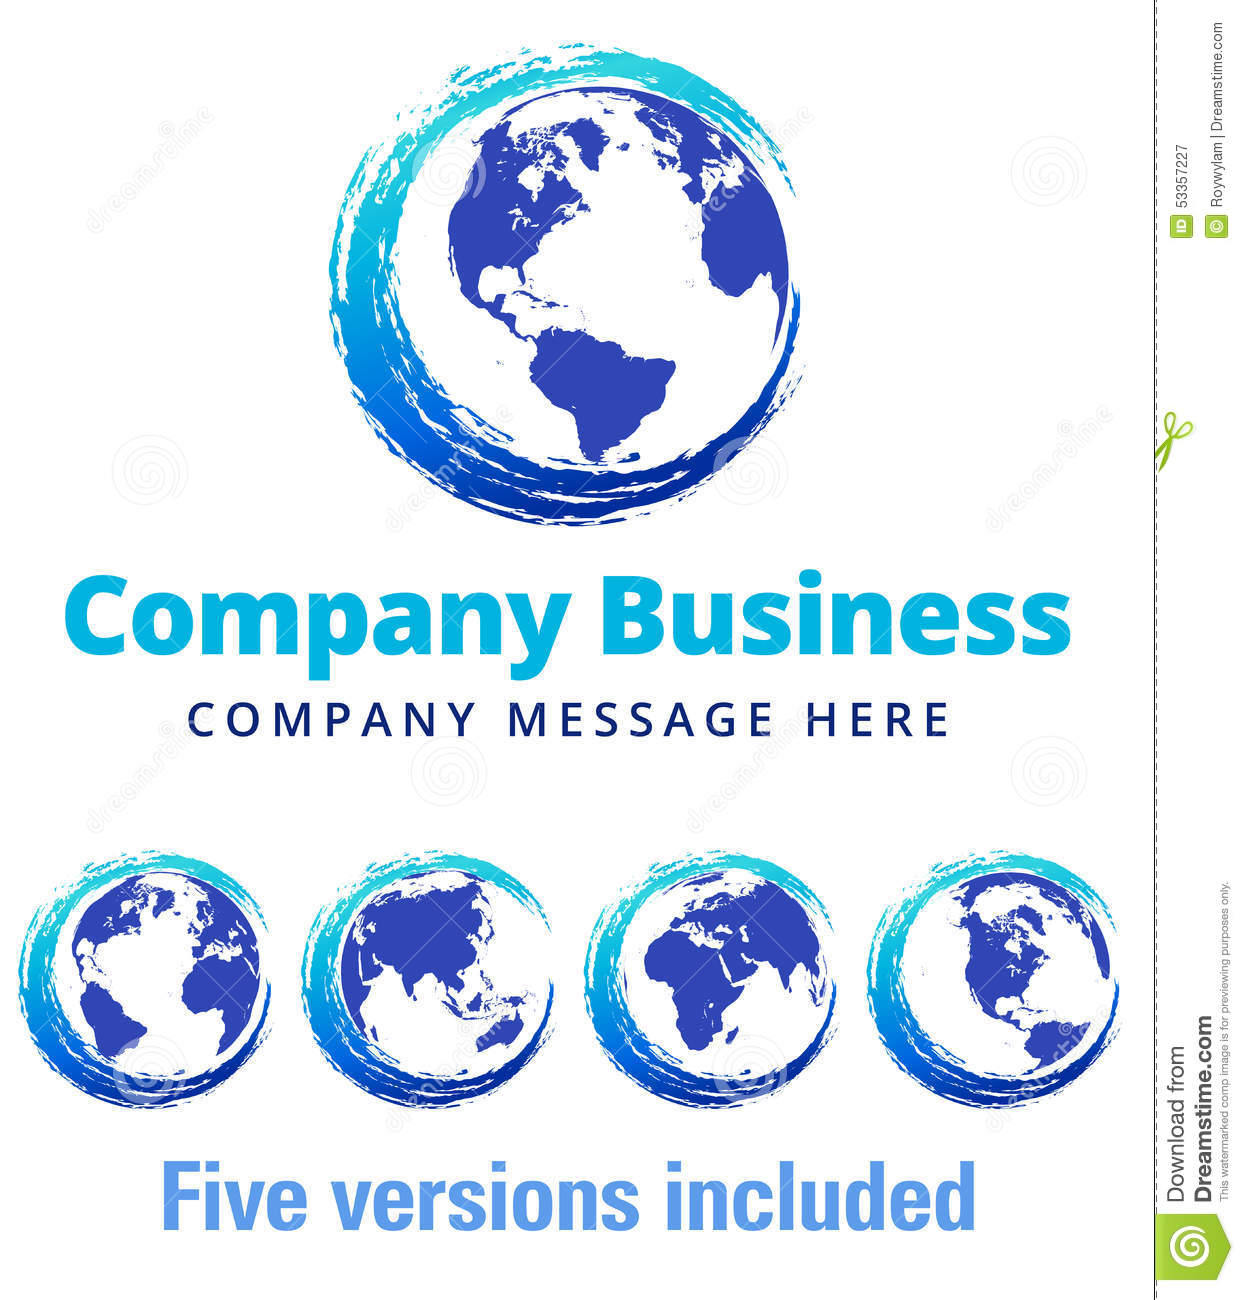 Swirl global company business logo symbol stock vector for Global design company